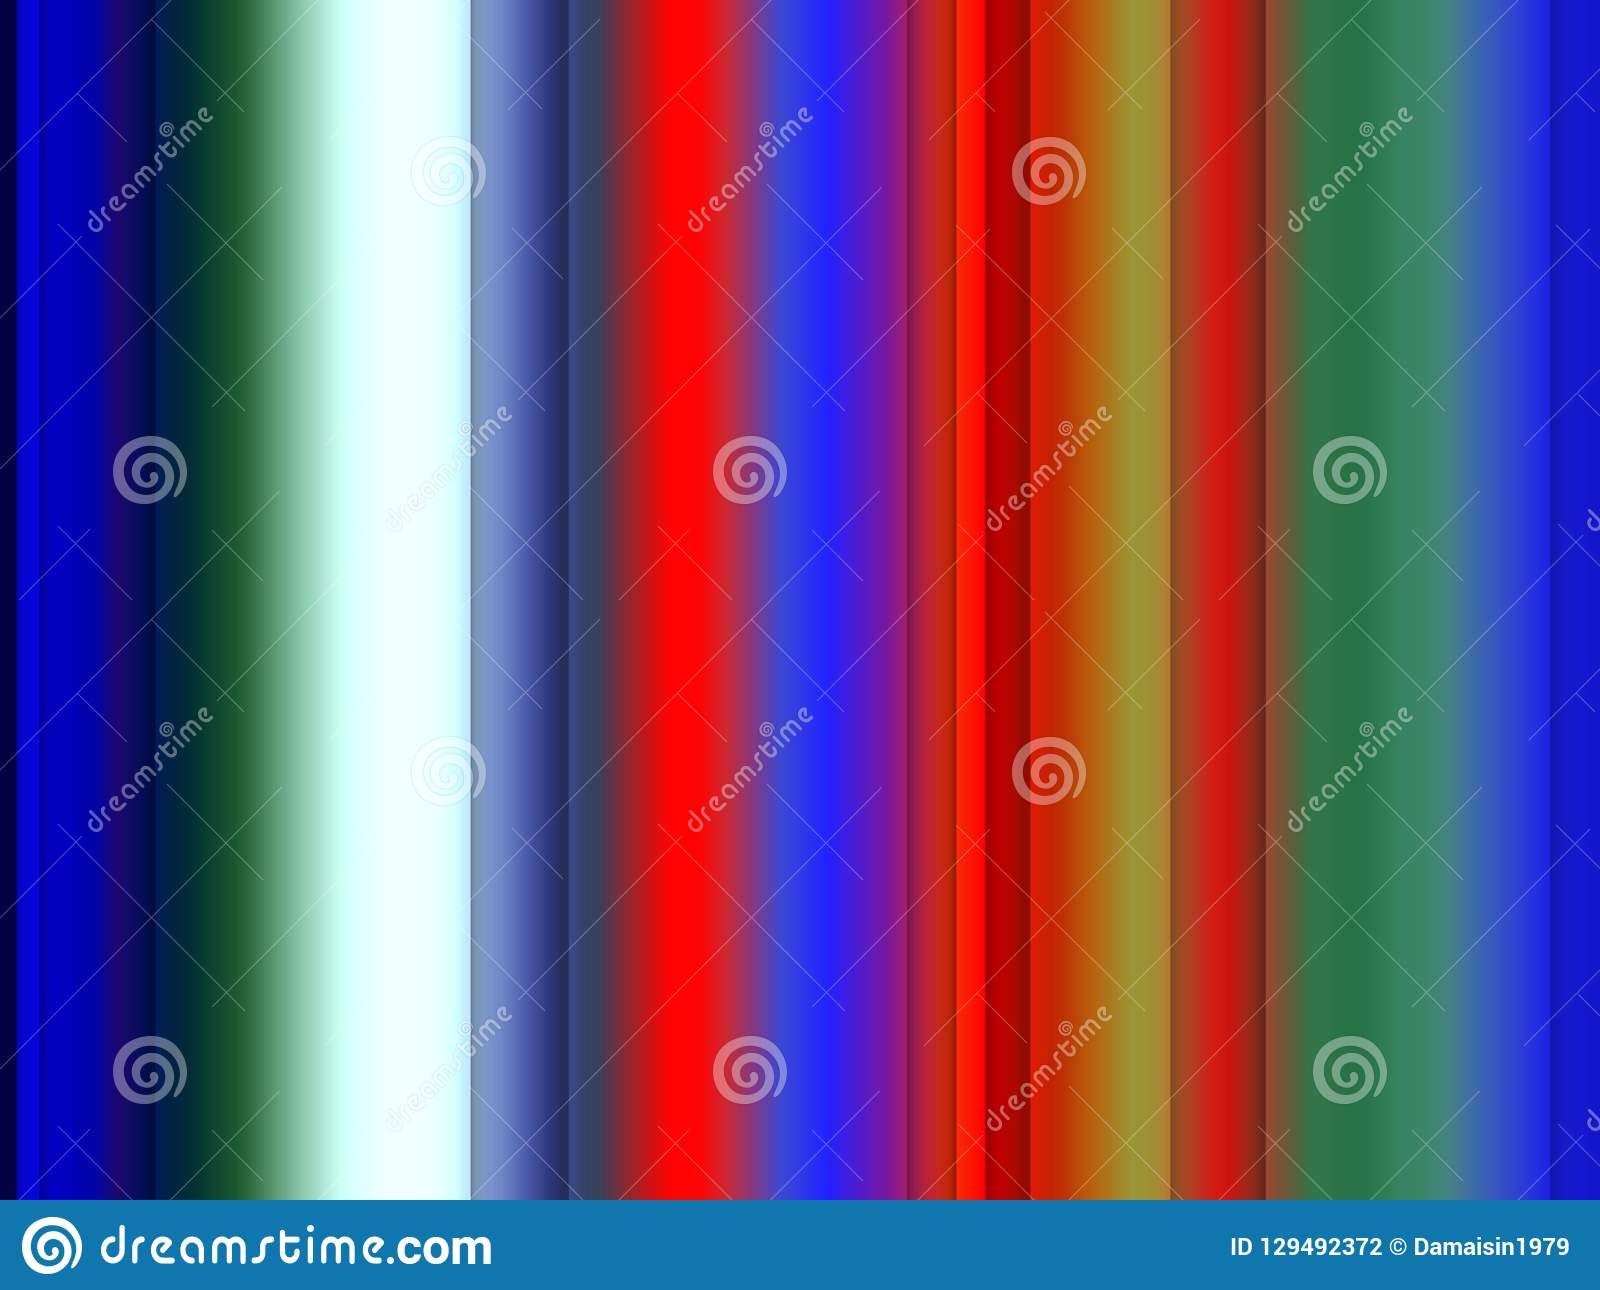 Sparkling Red Blu Green Lines Background Graphics Abstract